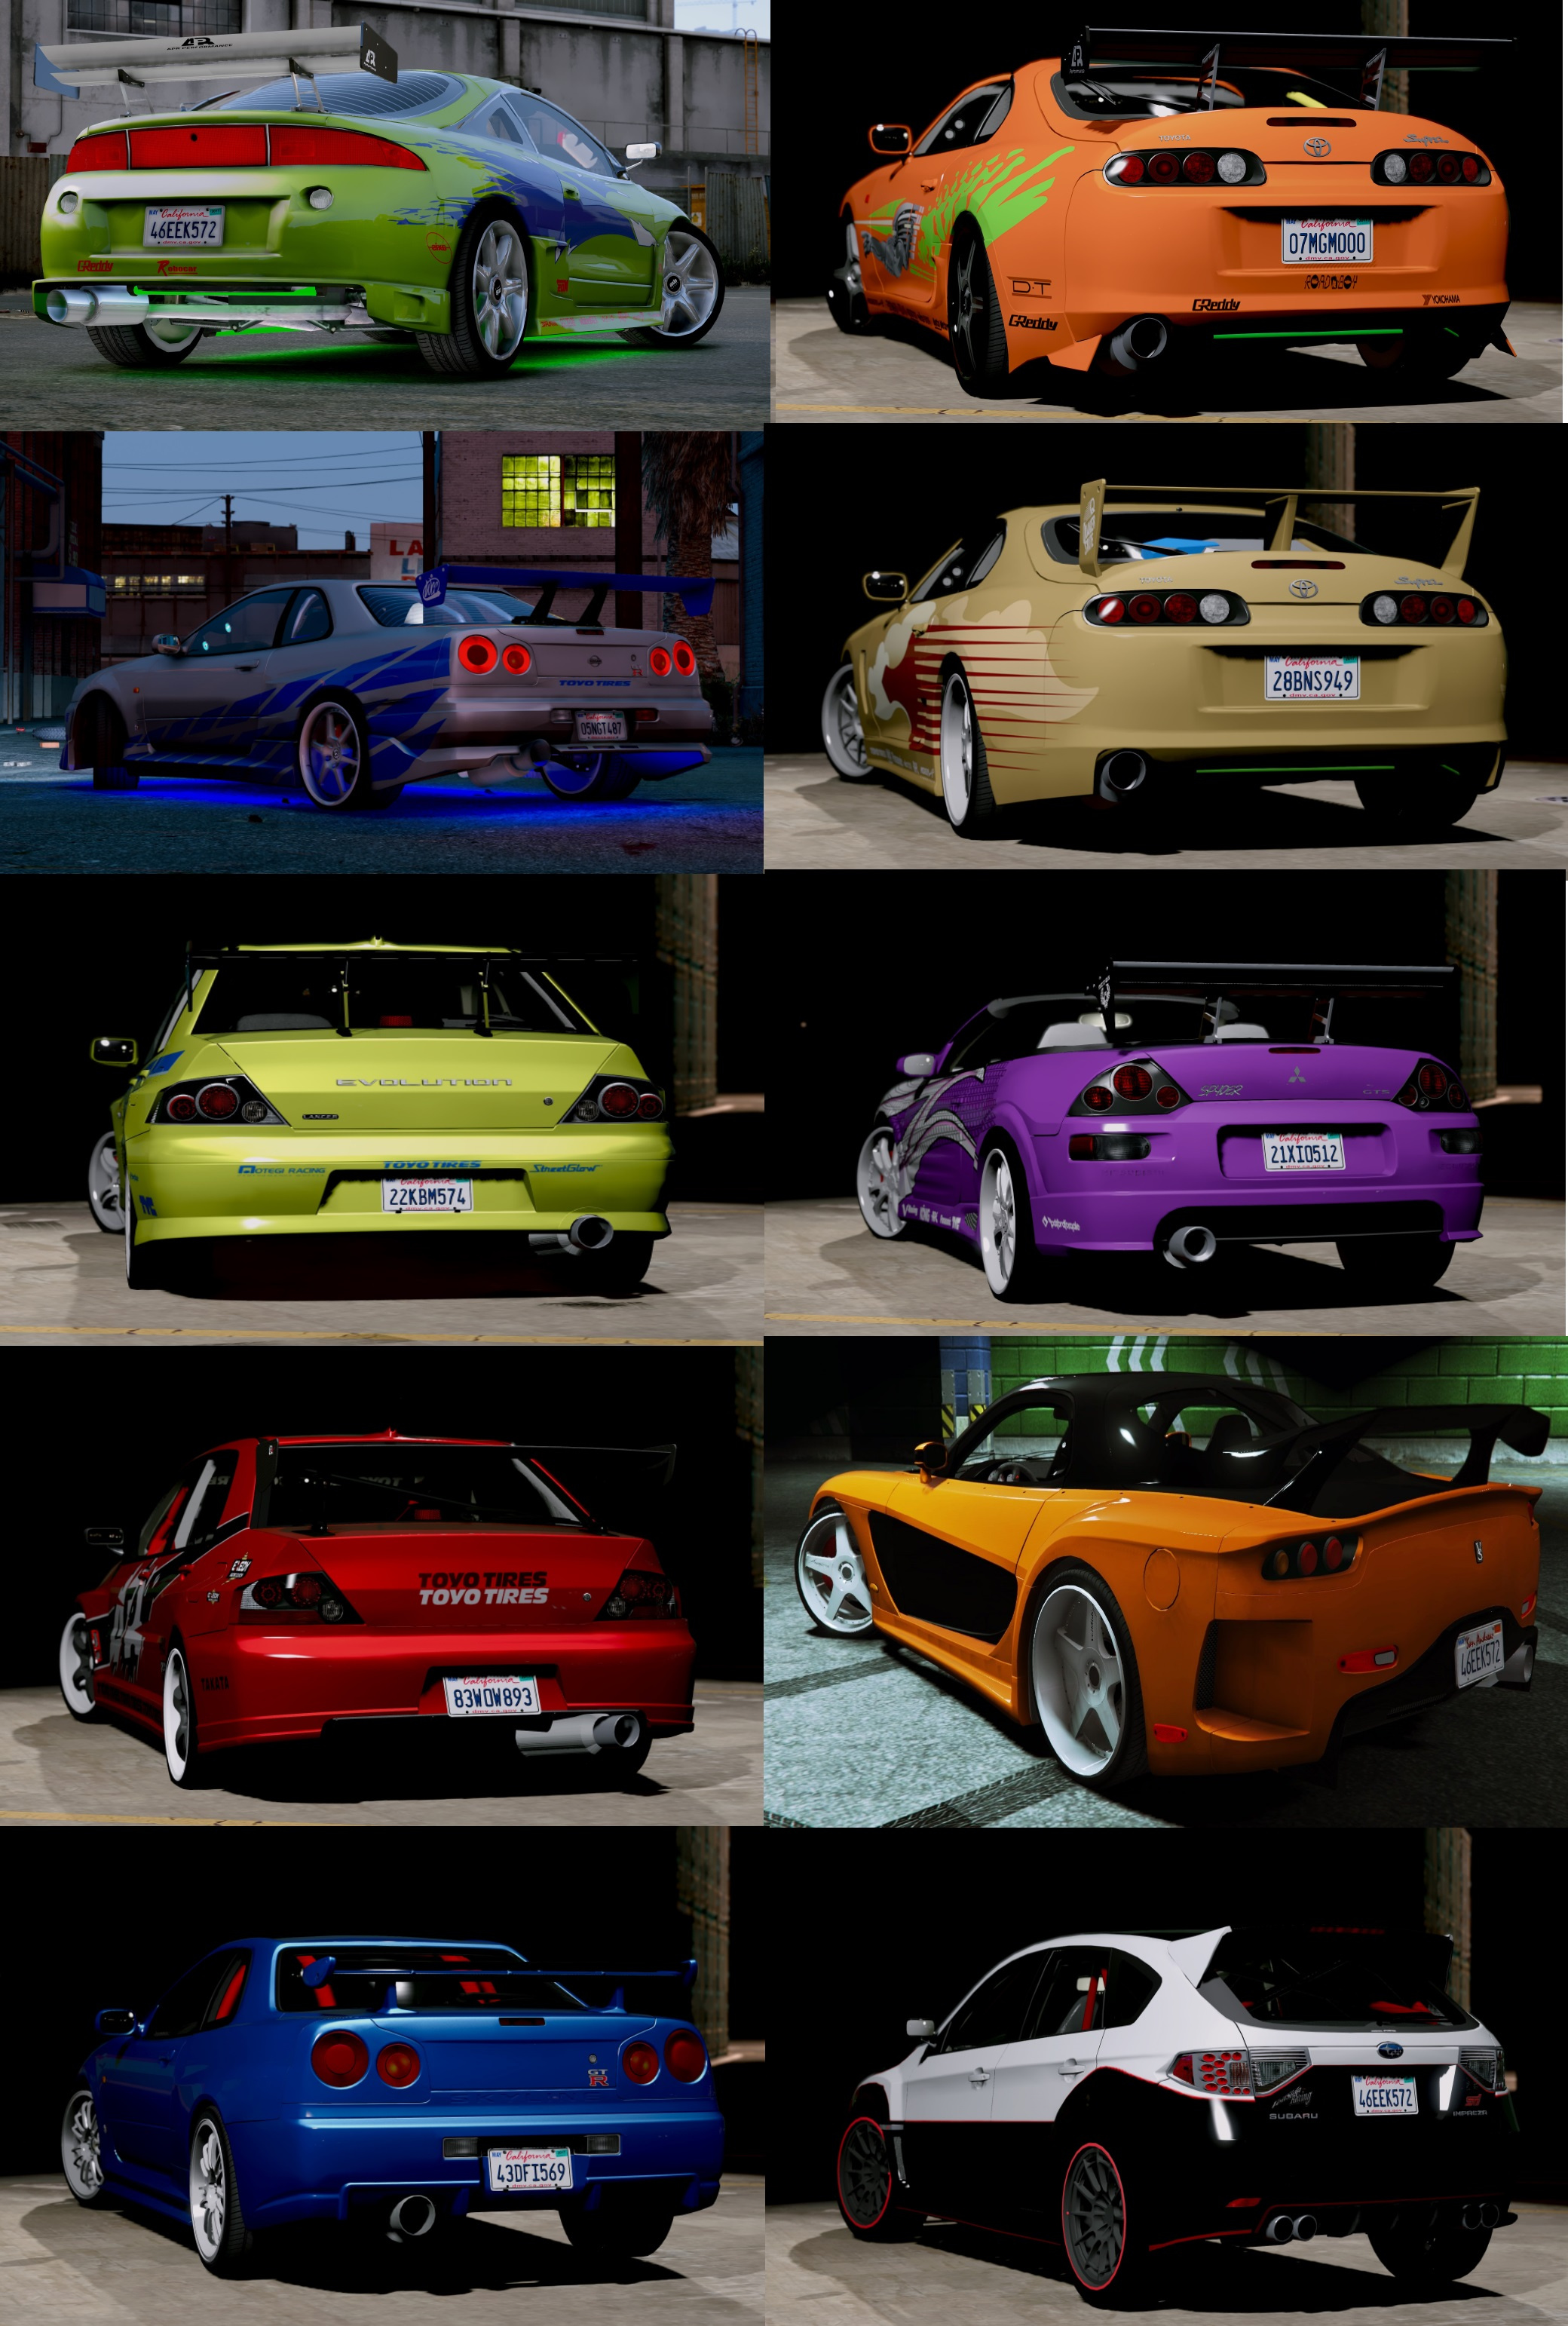 2003 Mitsubishi Eclipse Spyder Gts >> The Fast and the Furious Cars Pack [HQ-Add-On-Animated